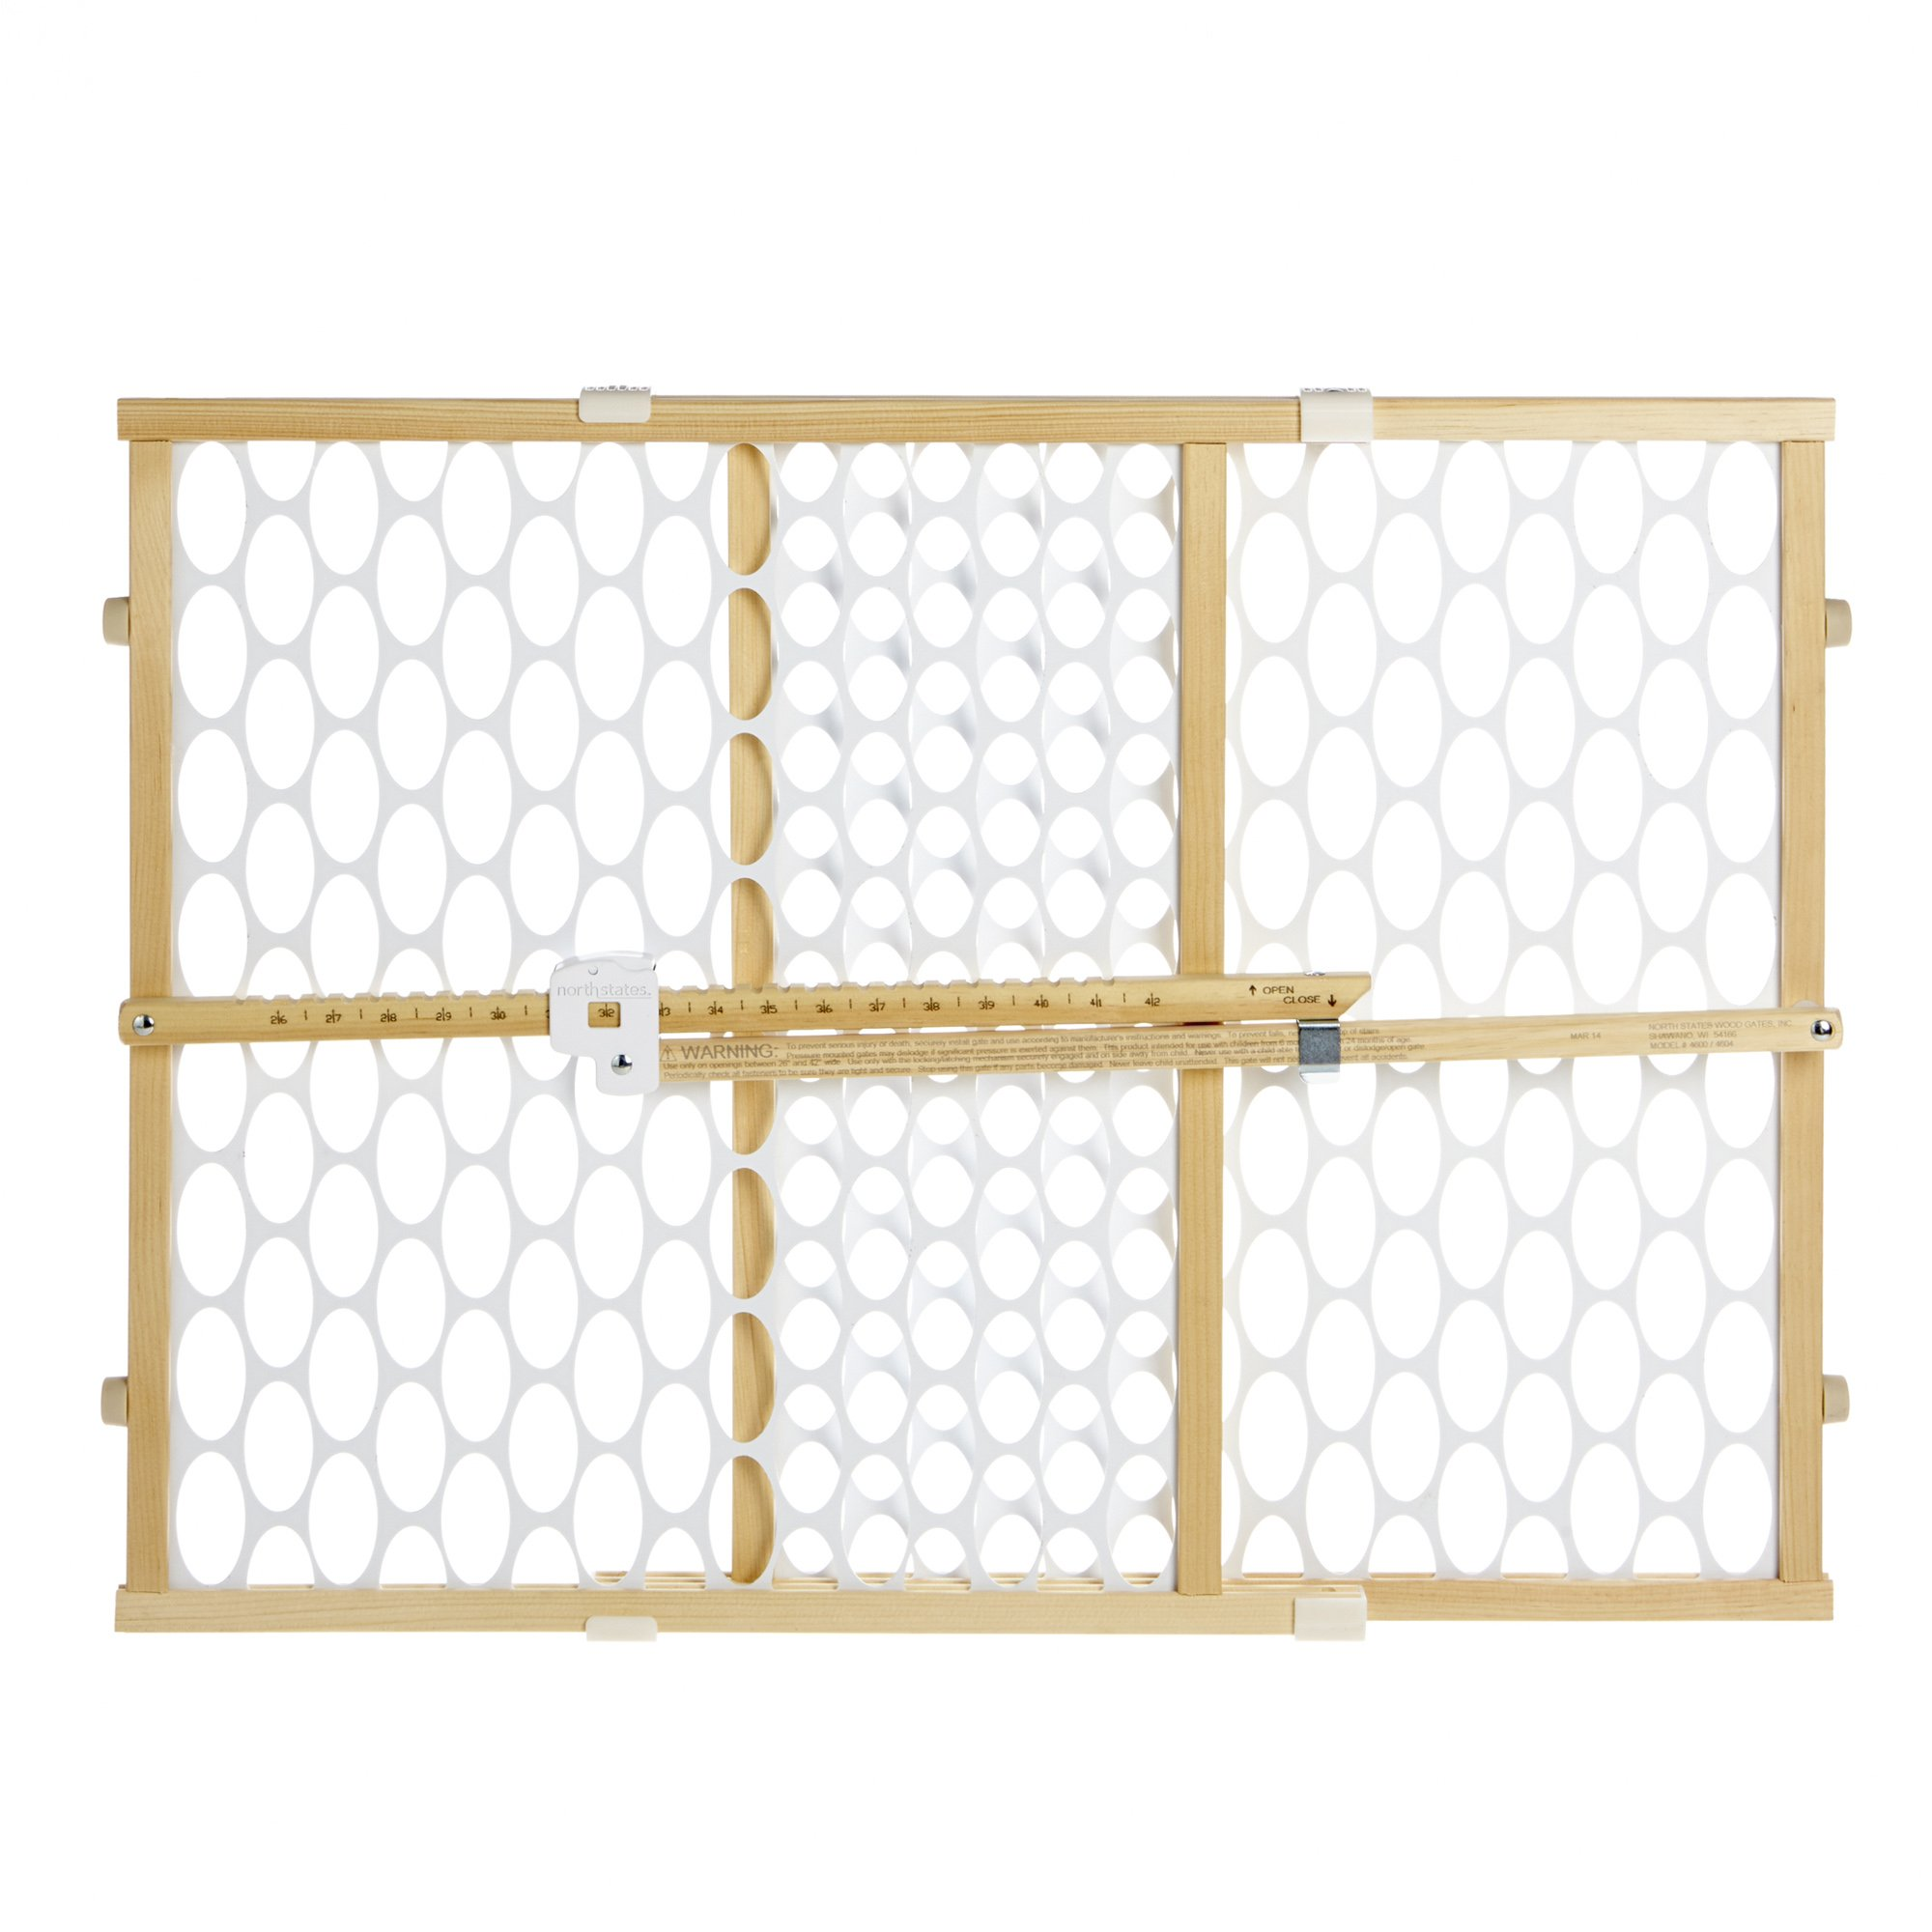 Supergate Quick Fit Oval Mesh Gate, 2 Pack, Fits Spaces between 26.5'' to 42'' Wide and 23''high by North States